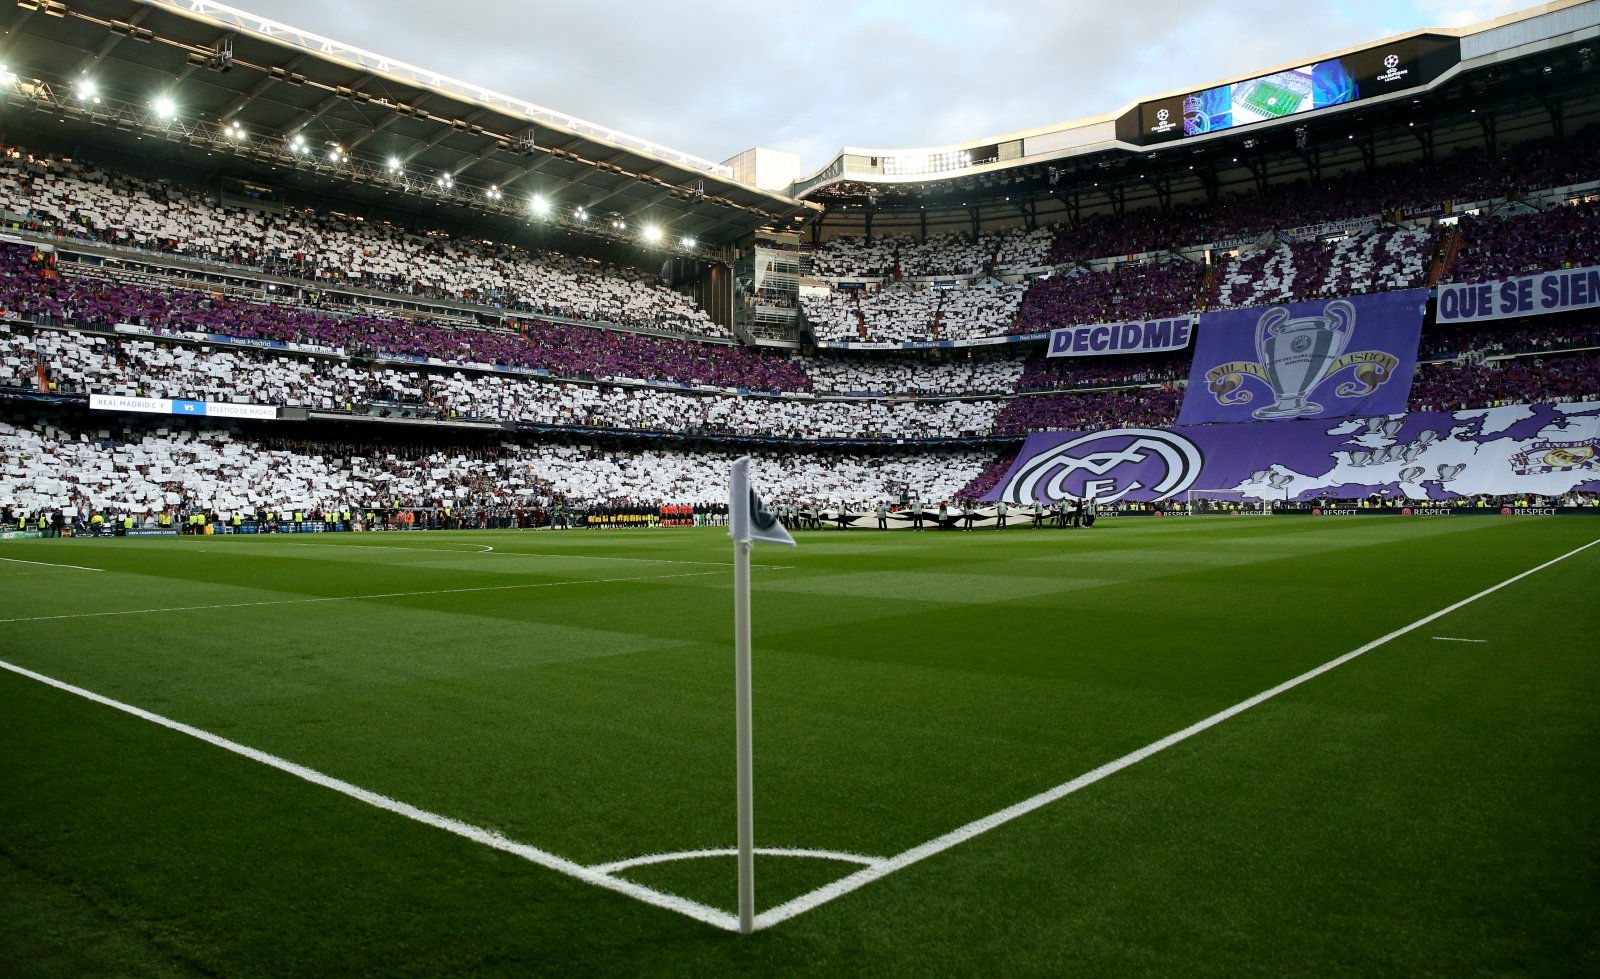 Real Madrid Reveal New Project To Have The Best Stadium In The World Within 4 Years Digital Sport